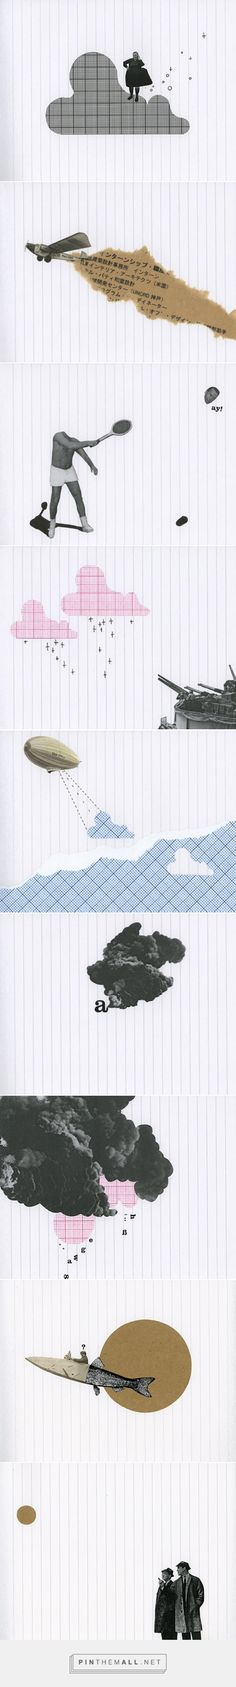 ARTE: I collage su notebook di Raúl Lázaro - Osso Magazine - created via http://pinthemall.net